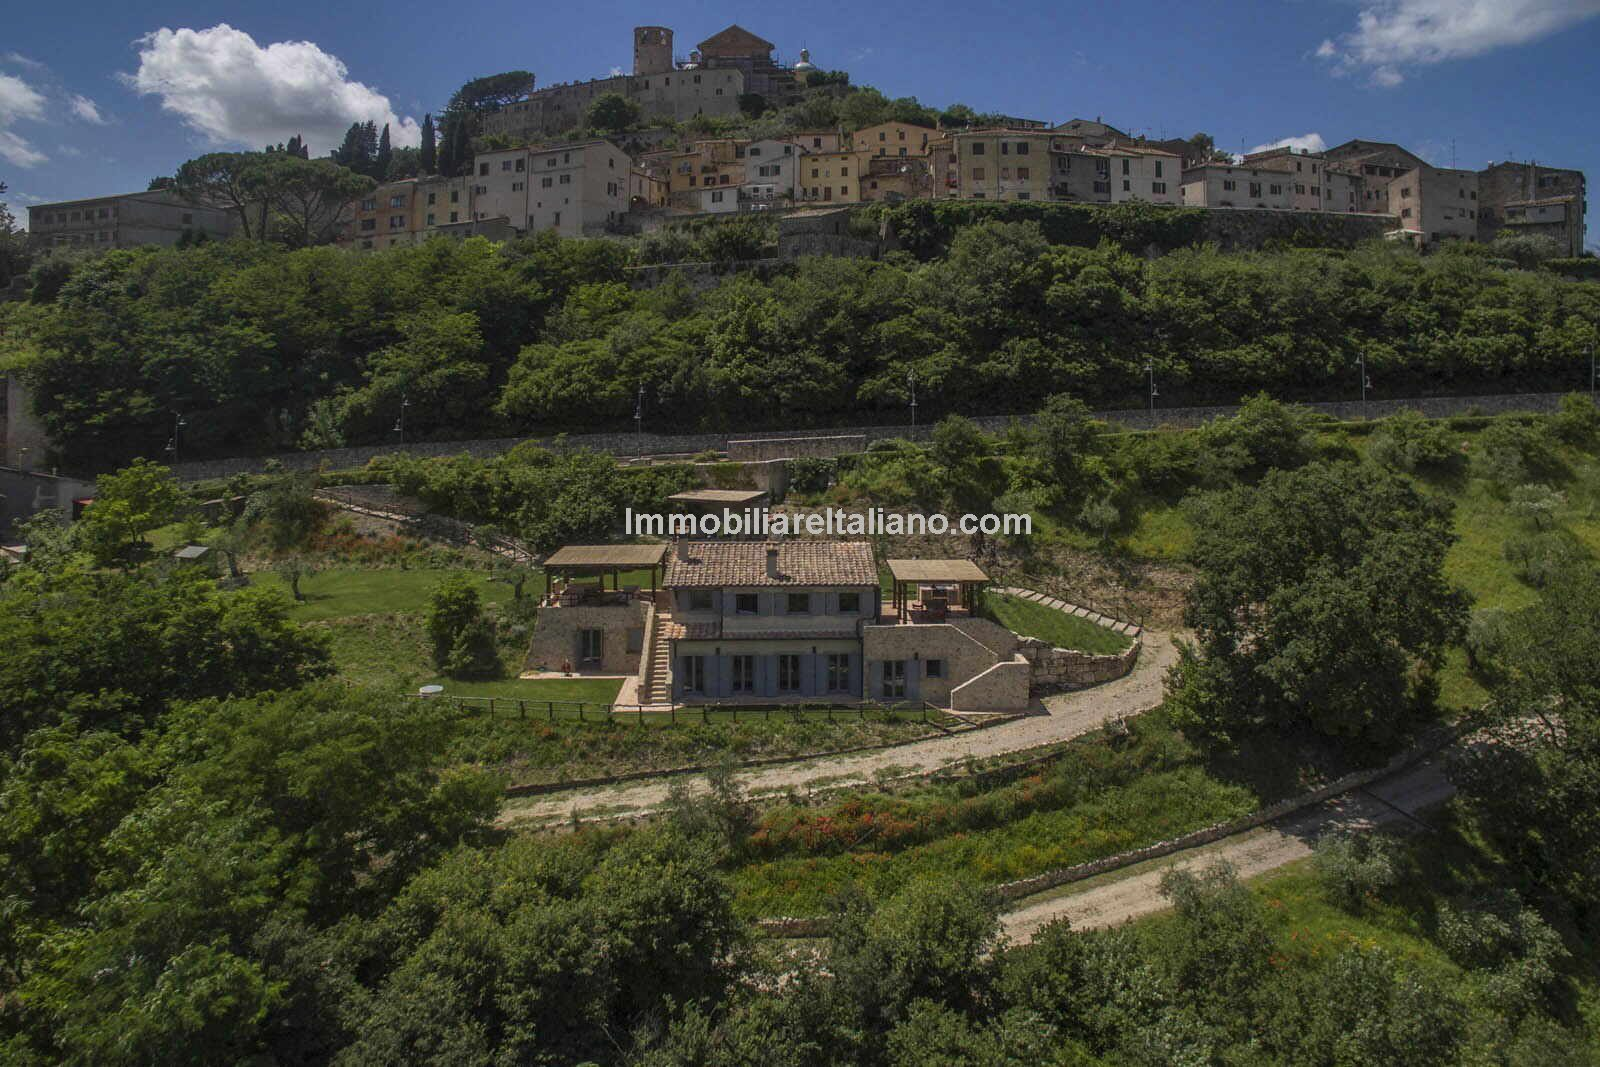 Property for sale in Amelia Umbria